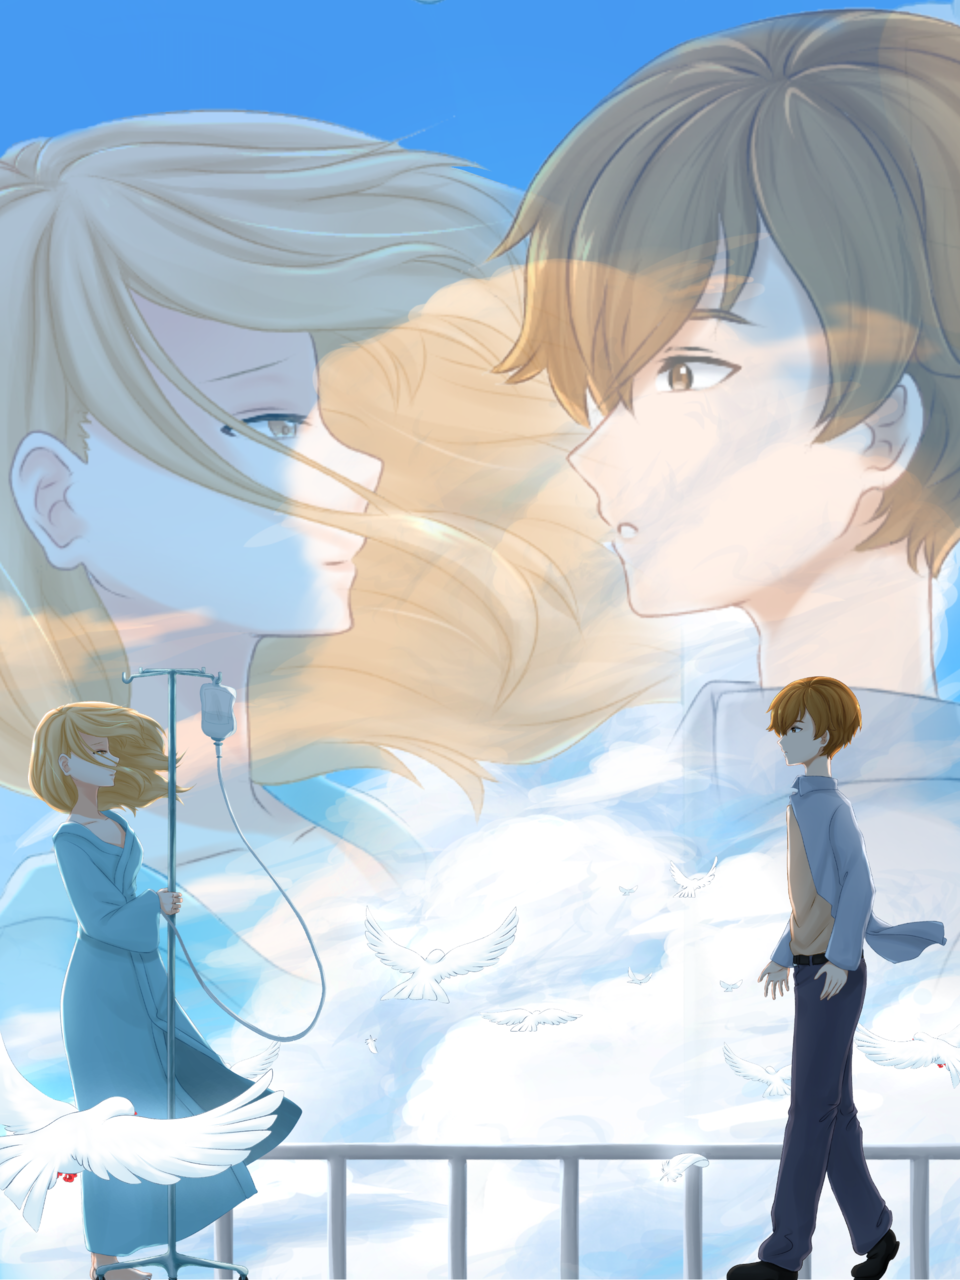 If you were to.... Illust of aruji-kun GOMABOOKS_Contest love sky Anime-girls couple illustration Anime-boys animeart